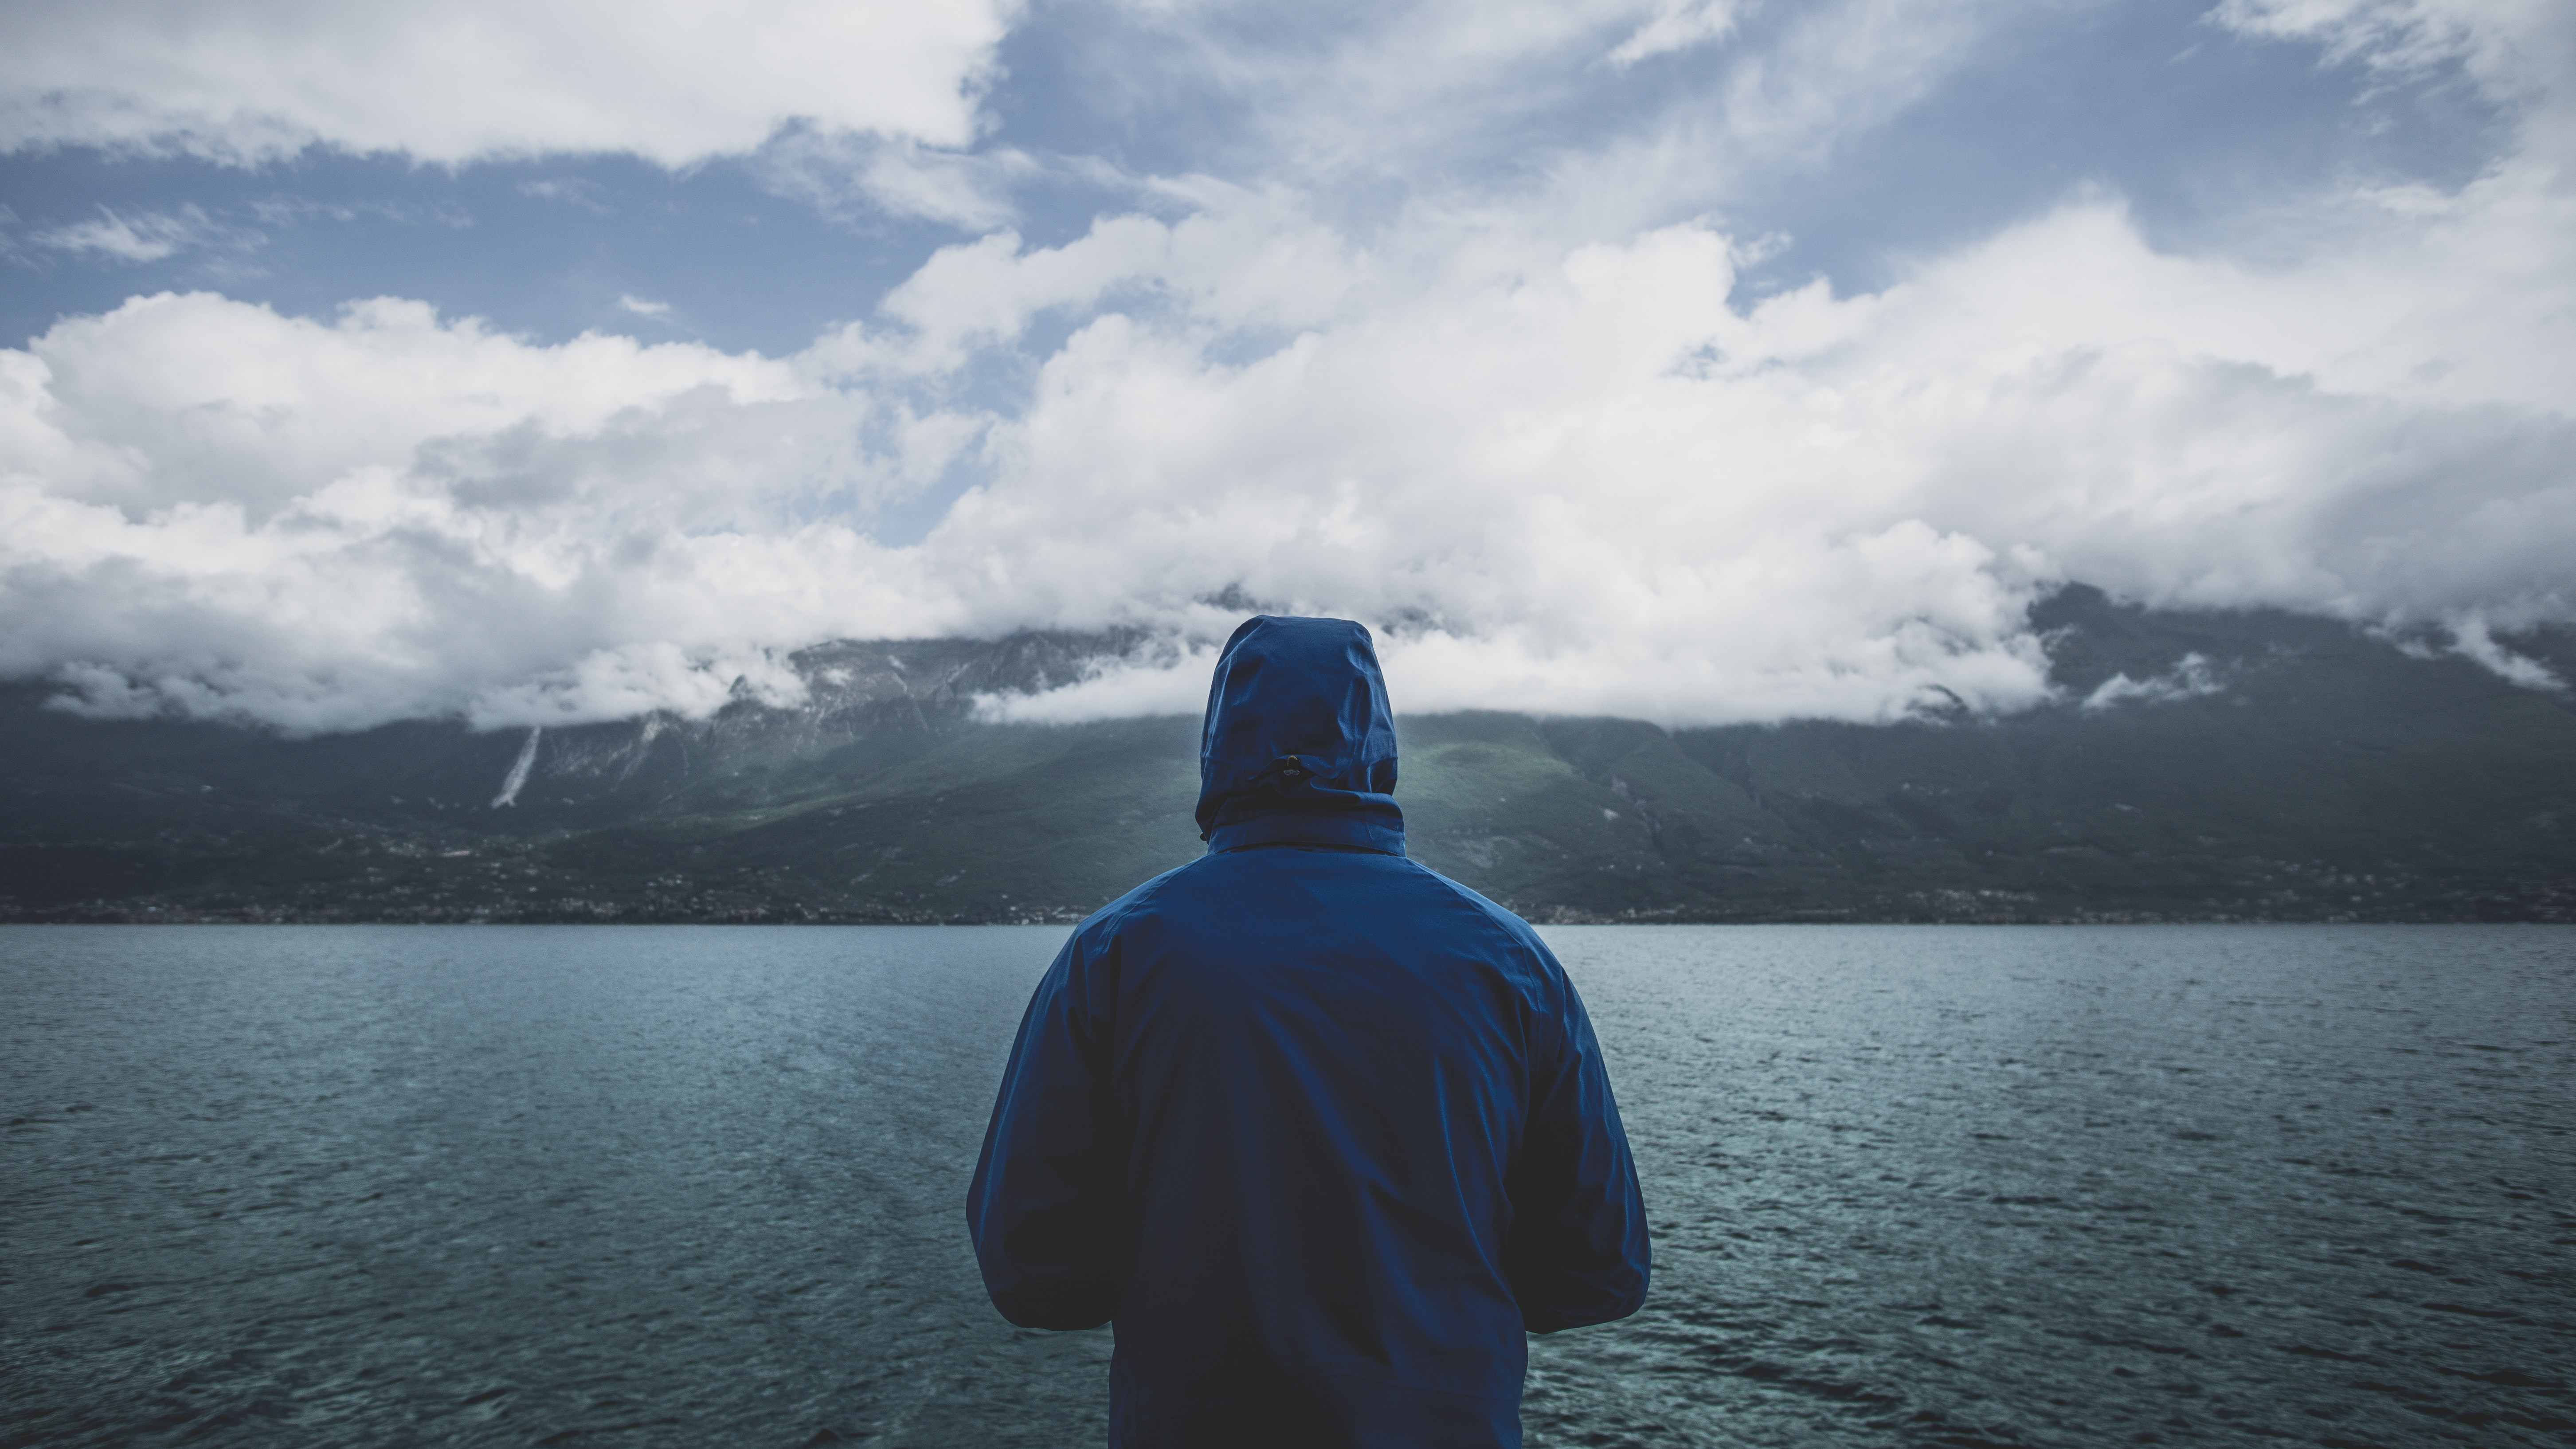 person wearing blue hoodie standing infront of body of water